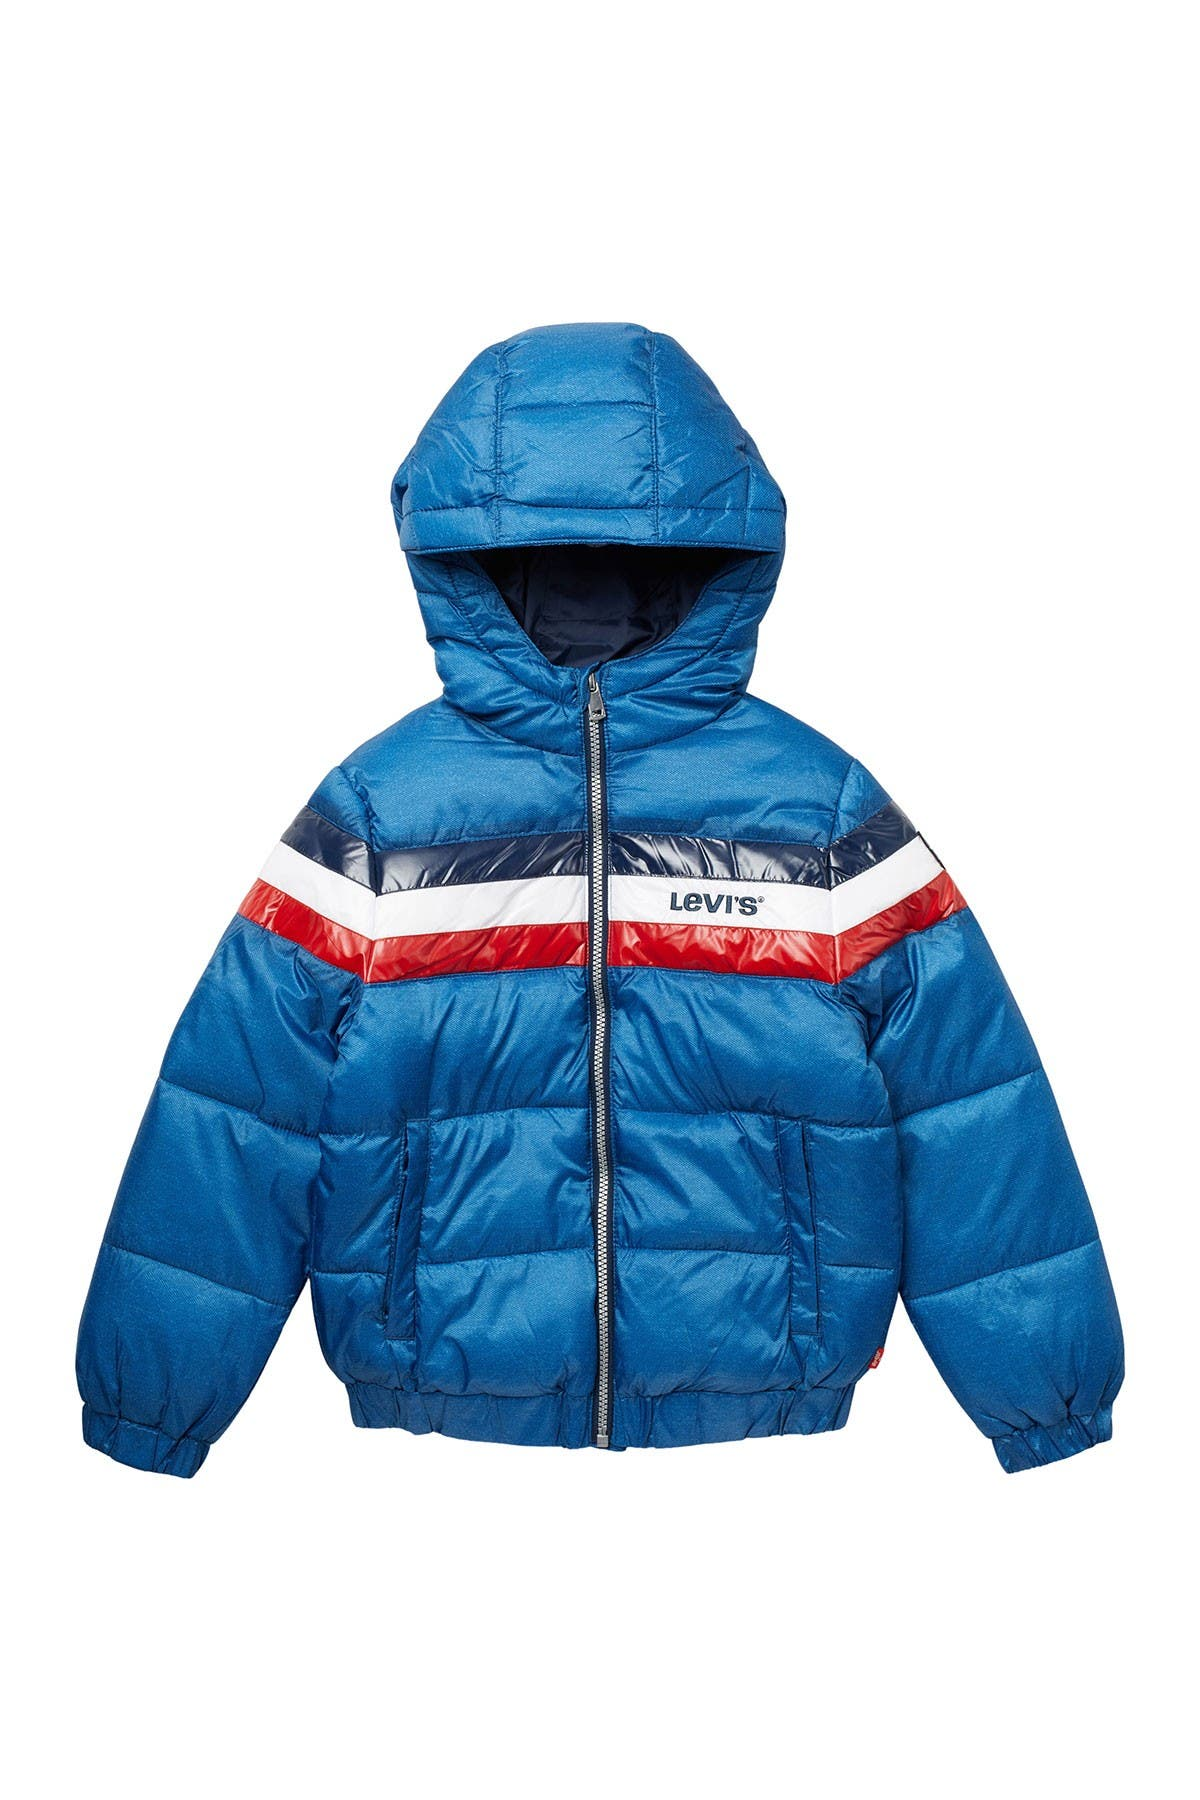 Image of Levi's Crop Puffer Jacket